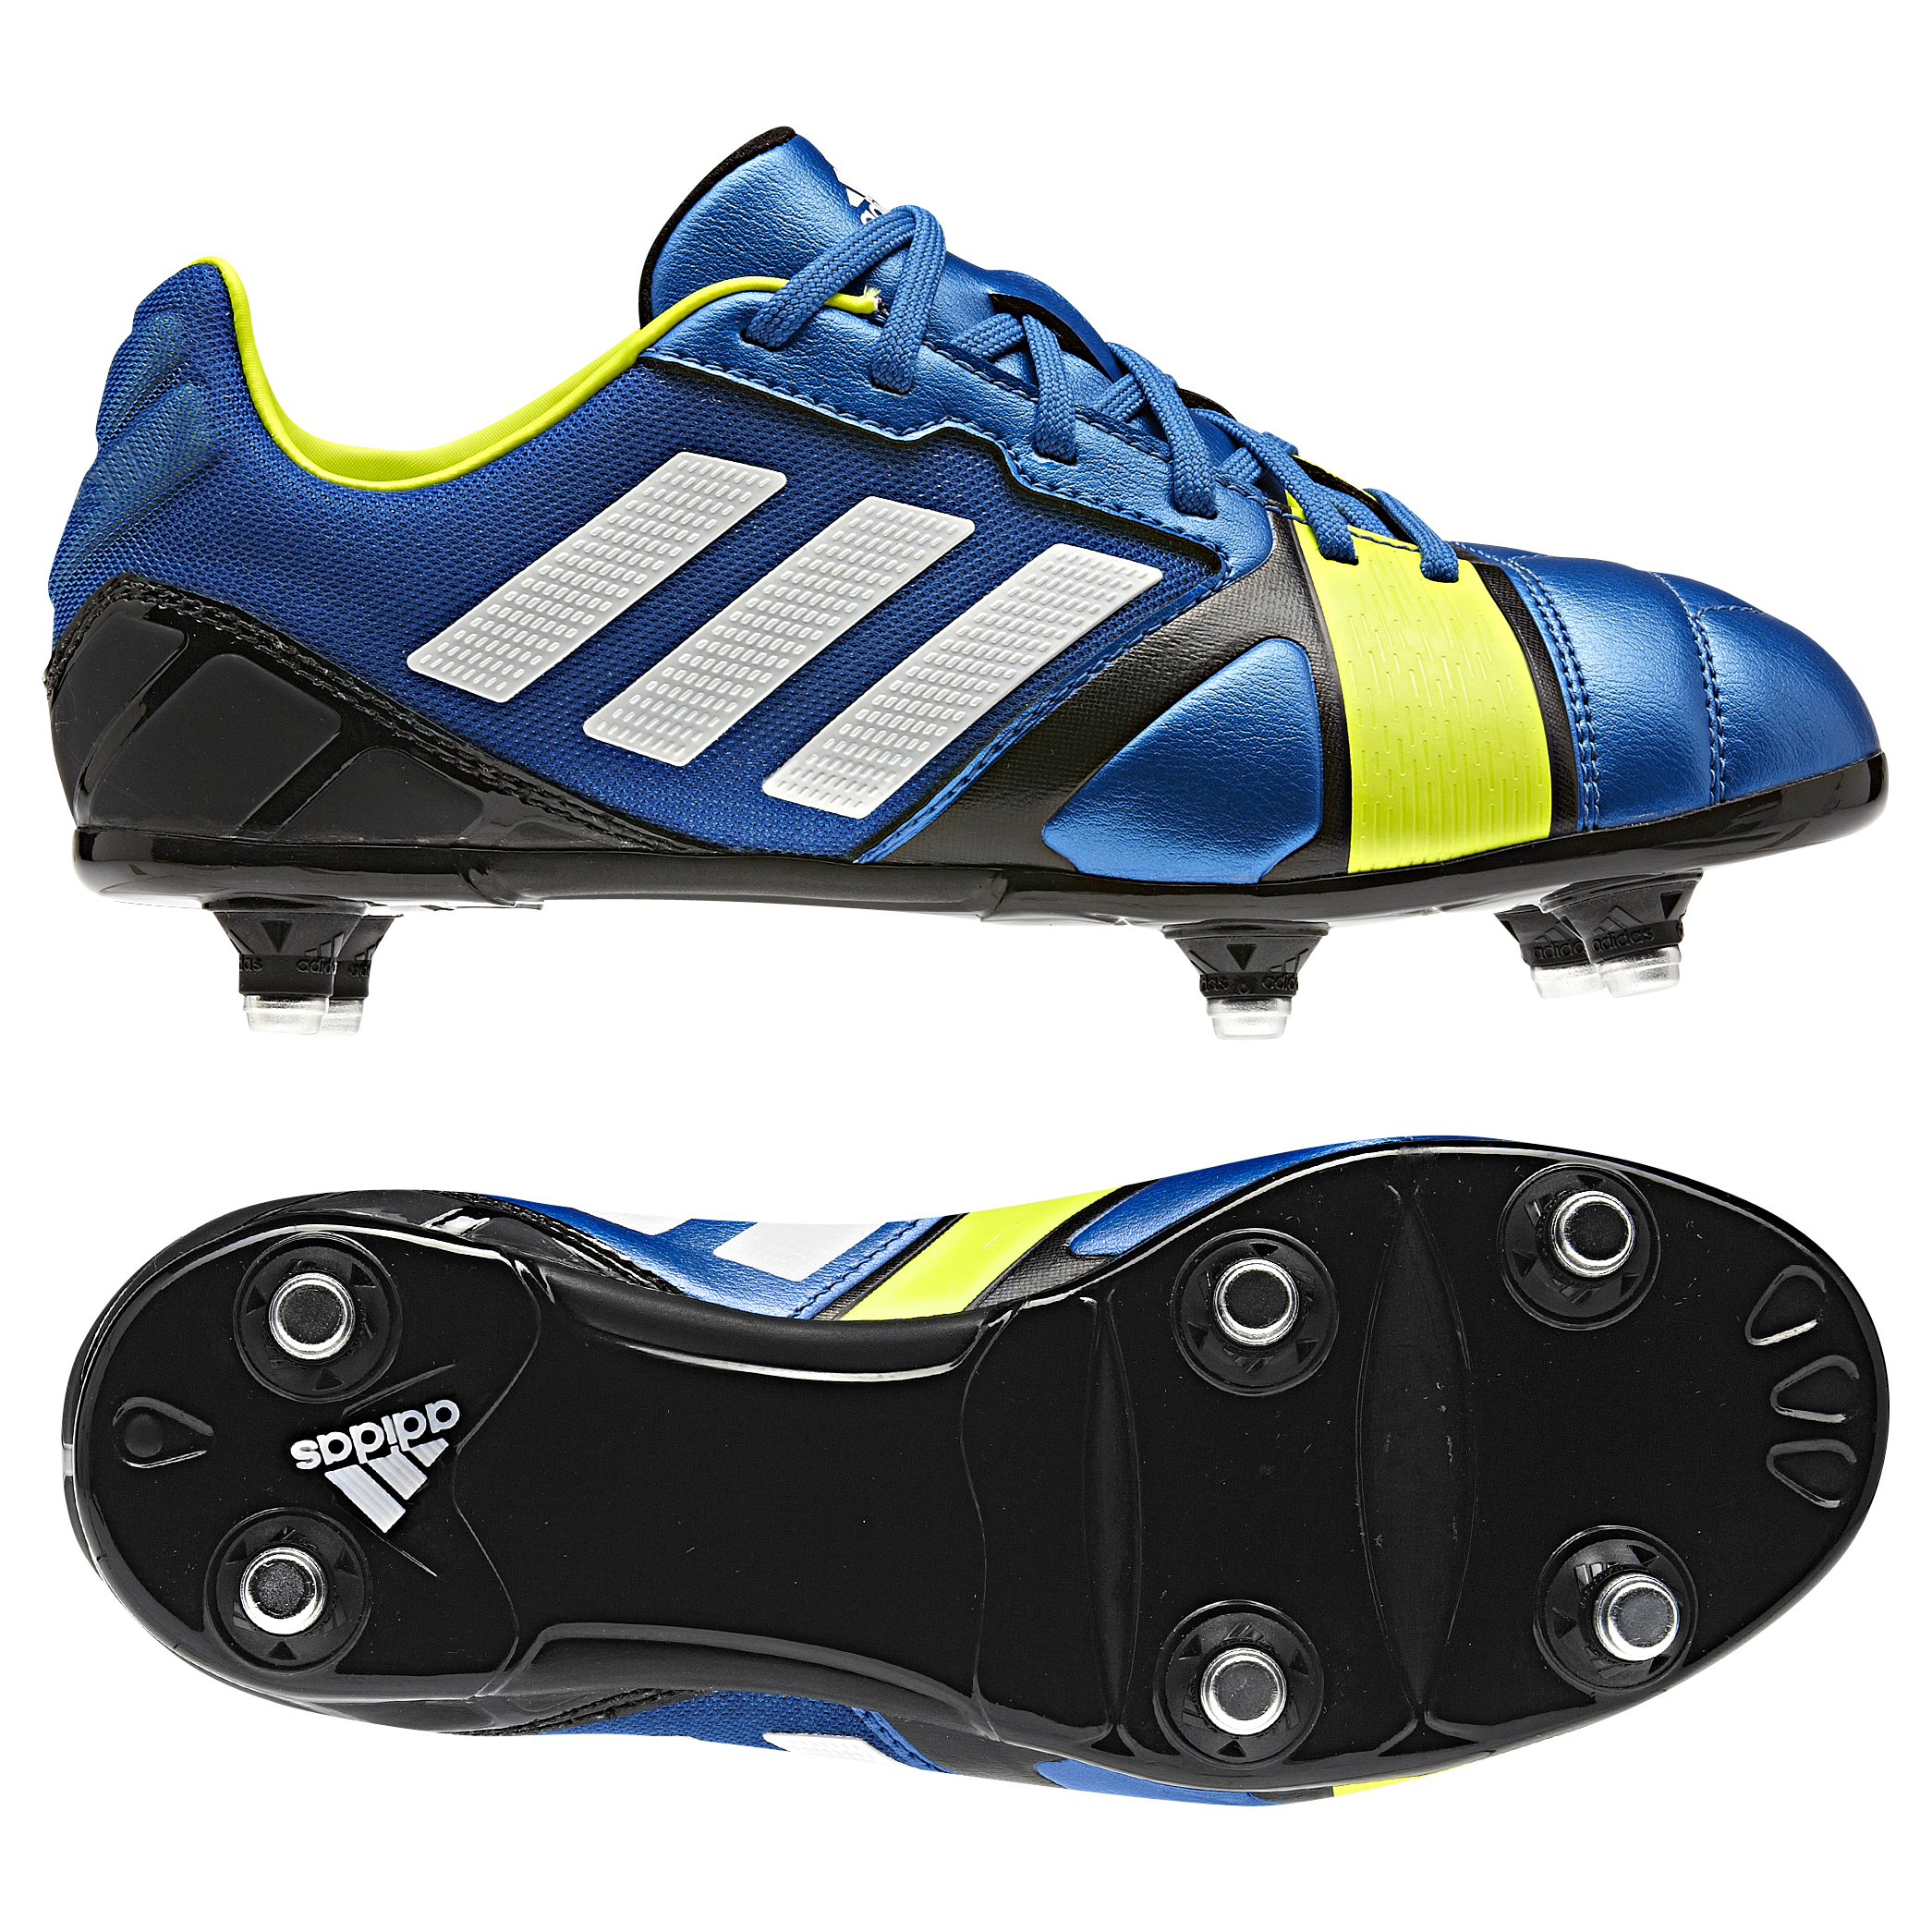 Adidas Nitrocharge 2.0 Soft Ground Football Boots - Kids Blue